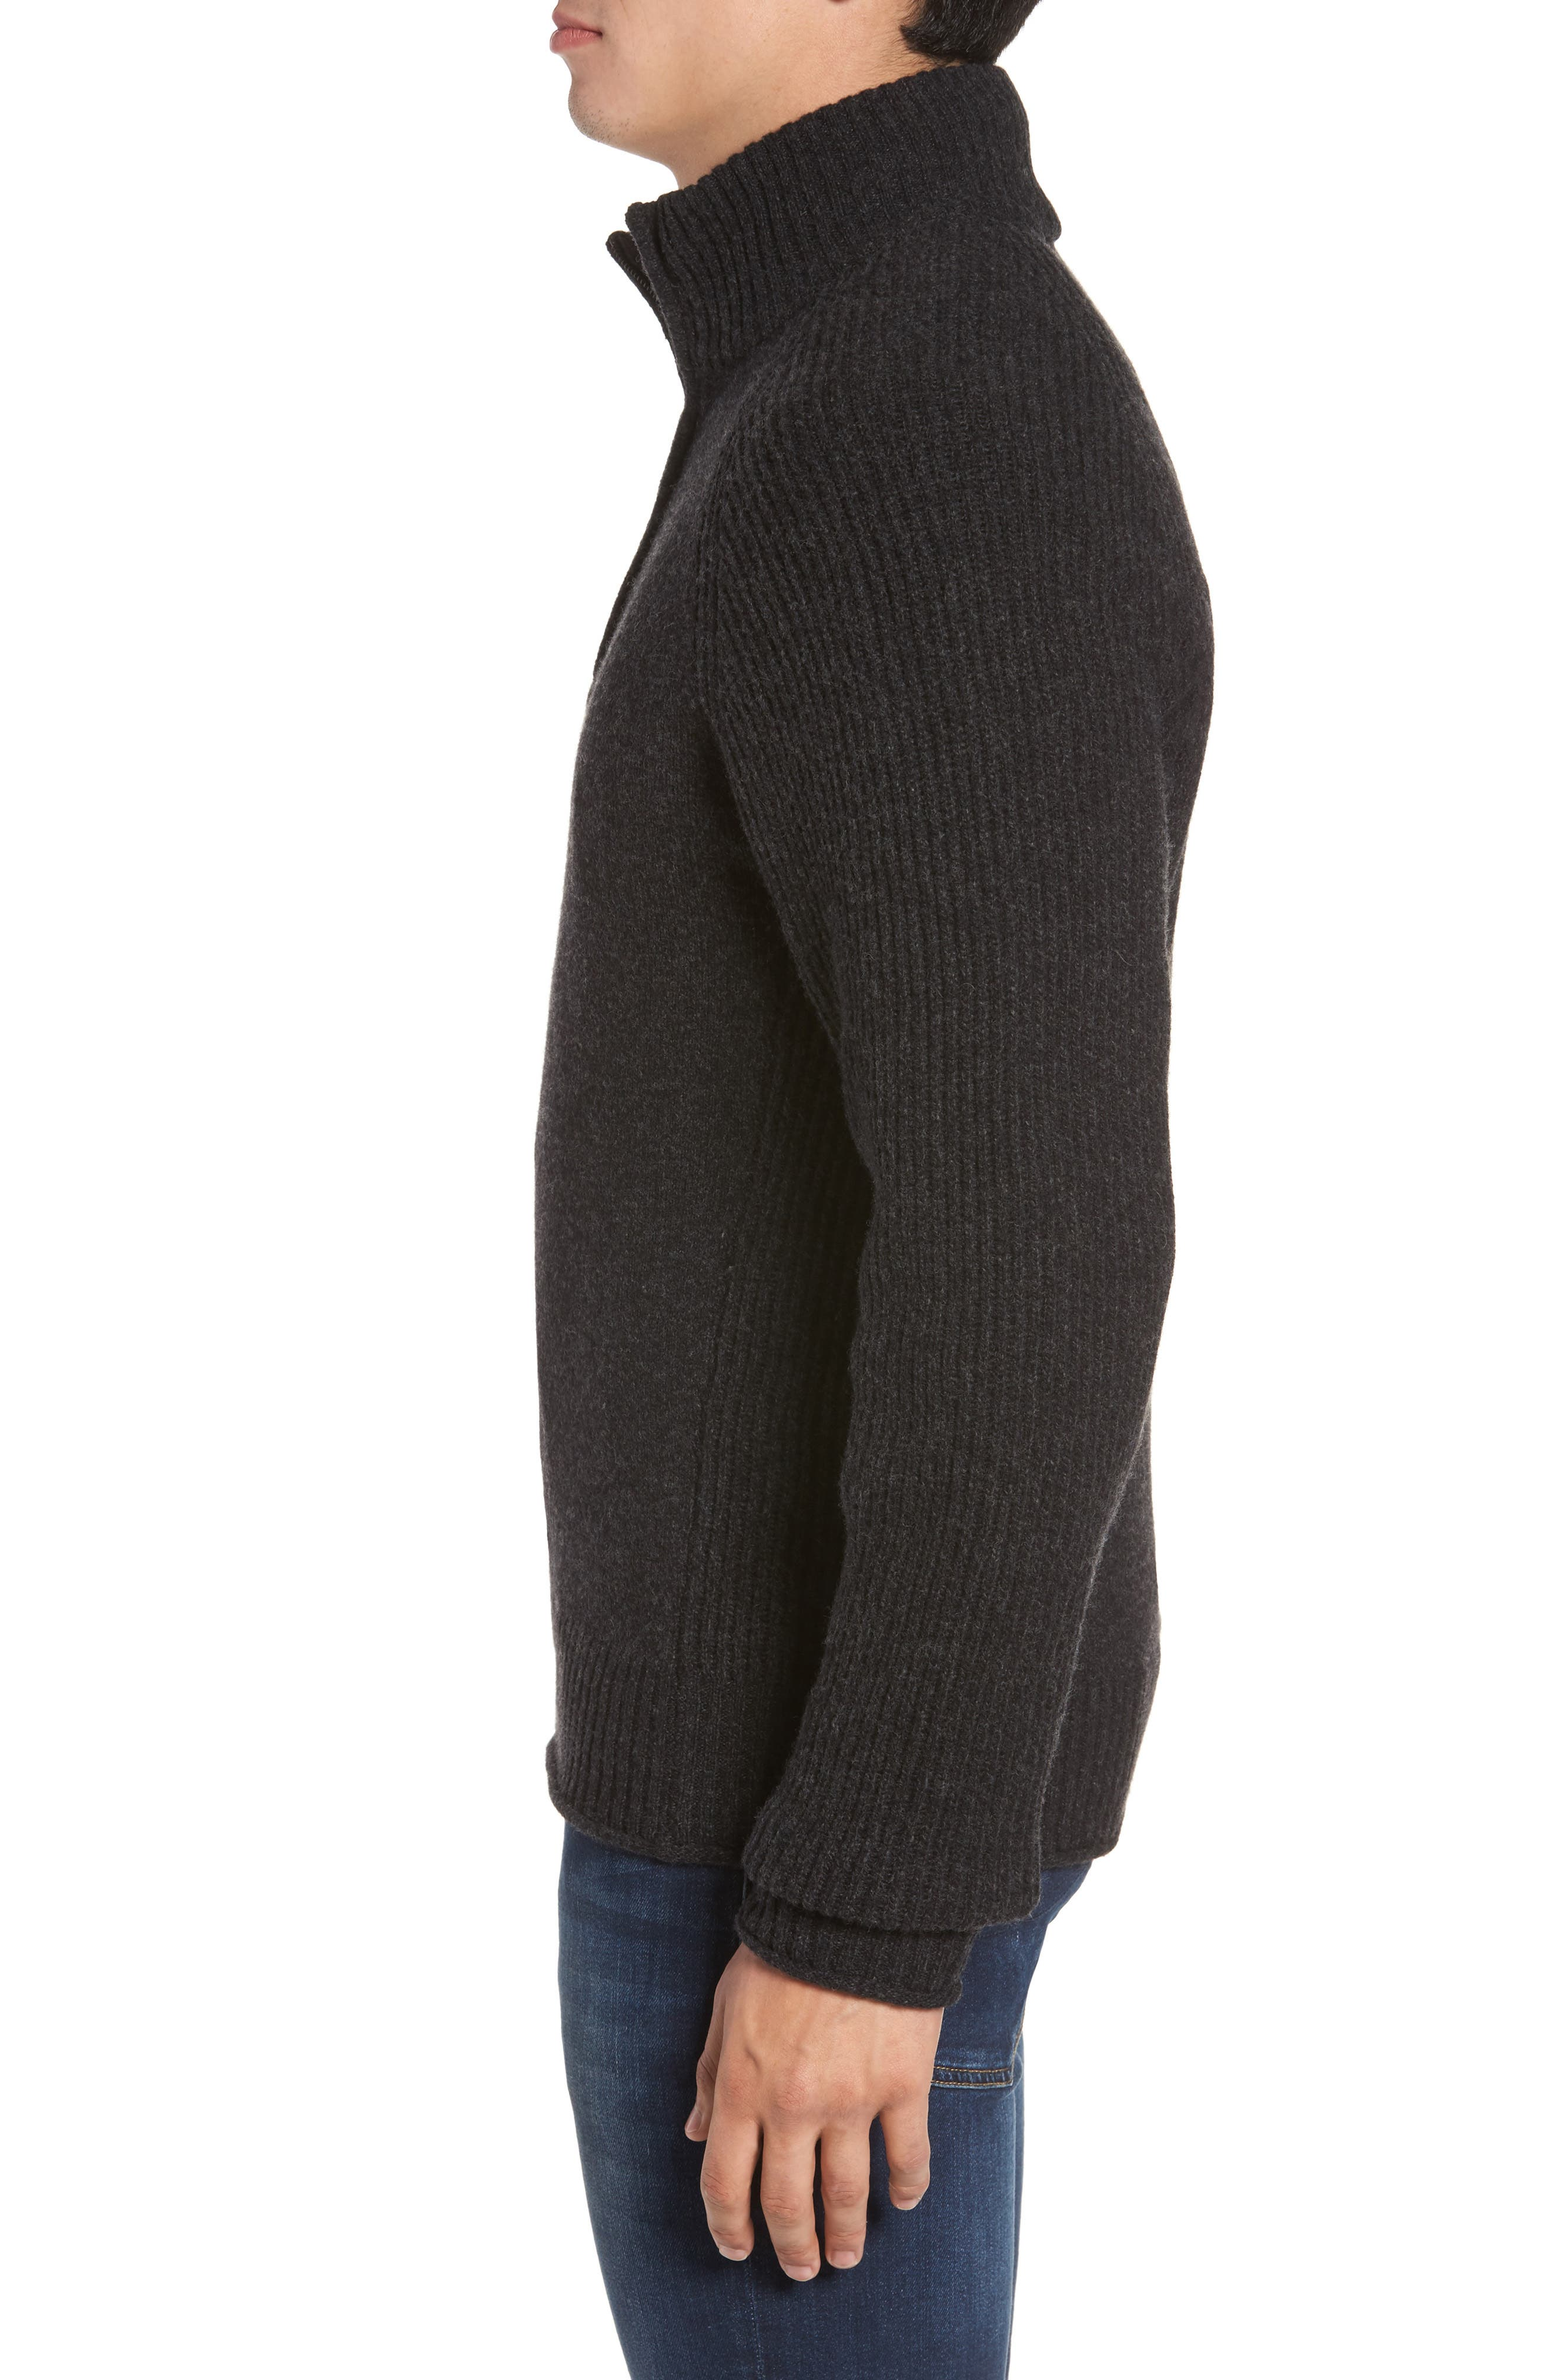 Stredwick Lambswool Sweater,                             Alternate thumbnail 11, color,